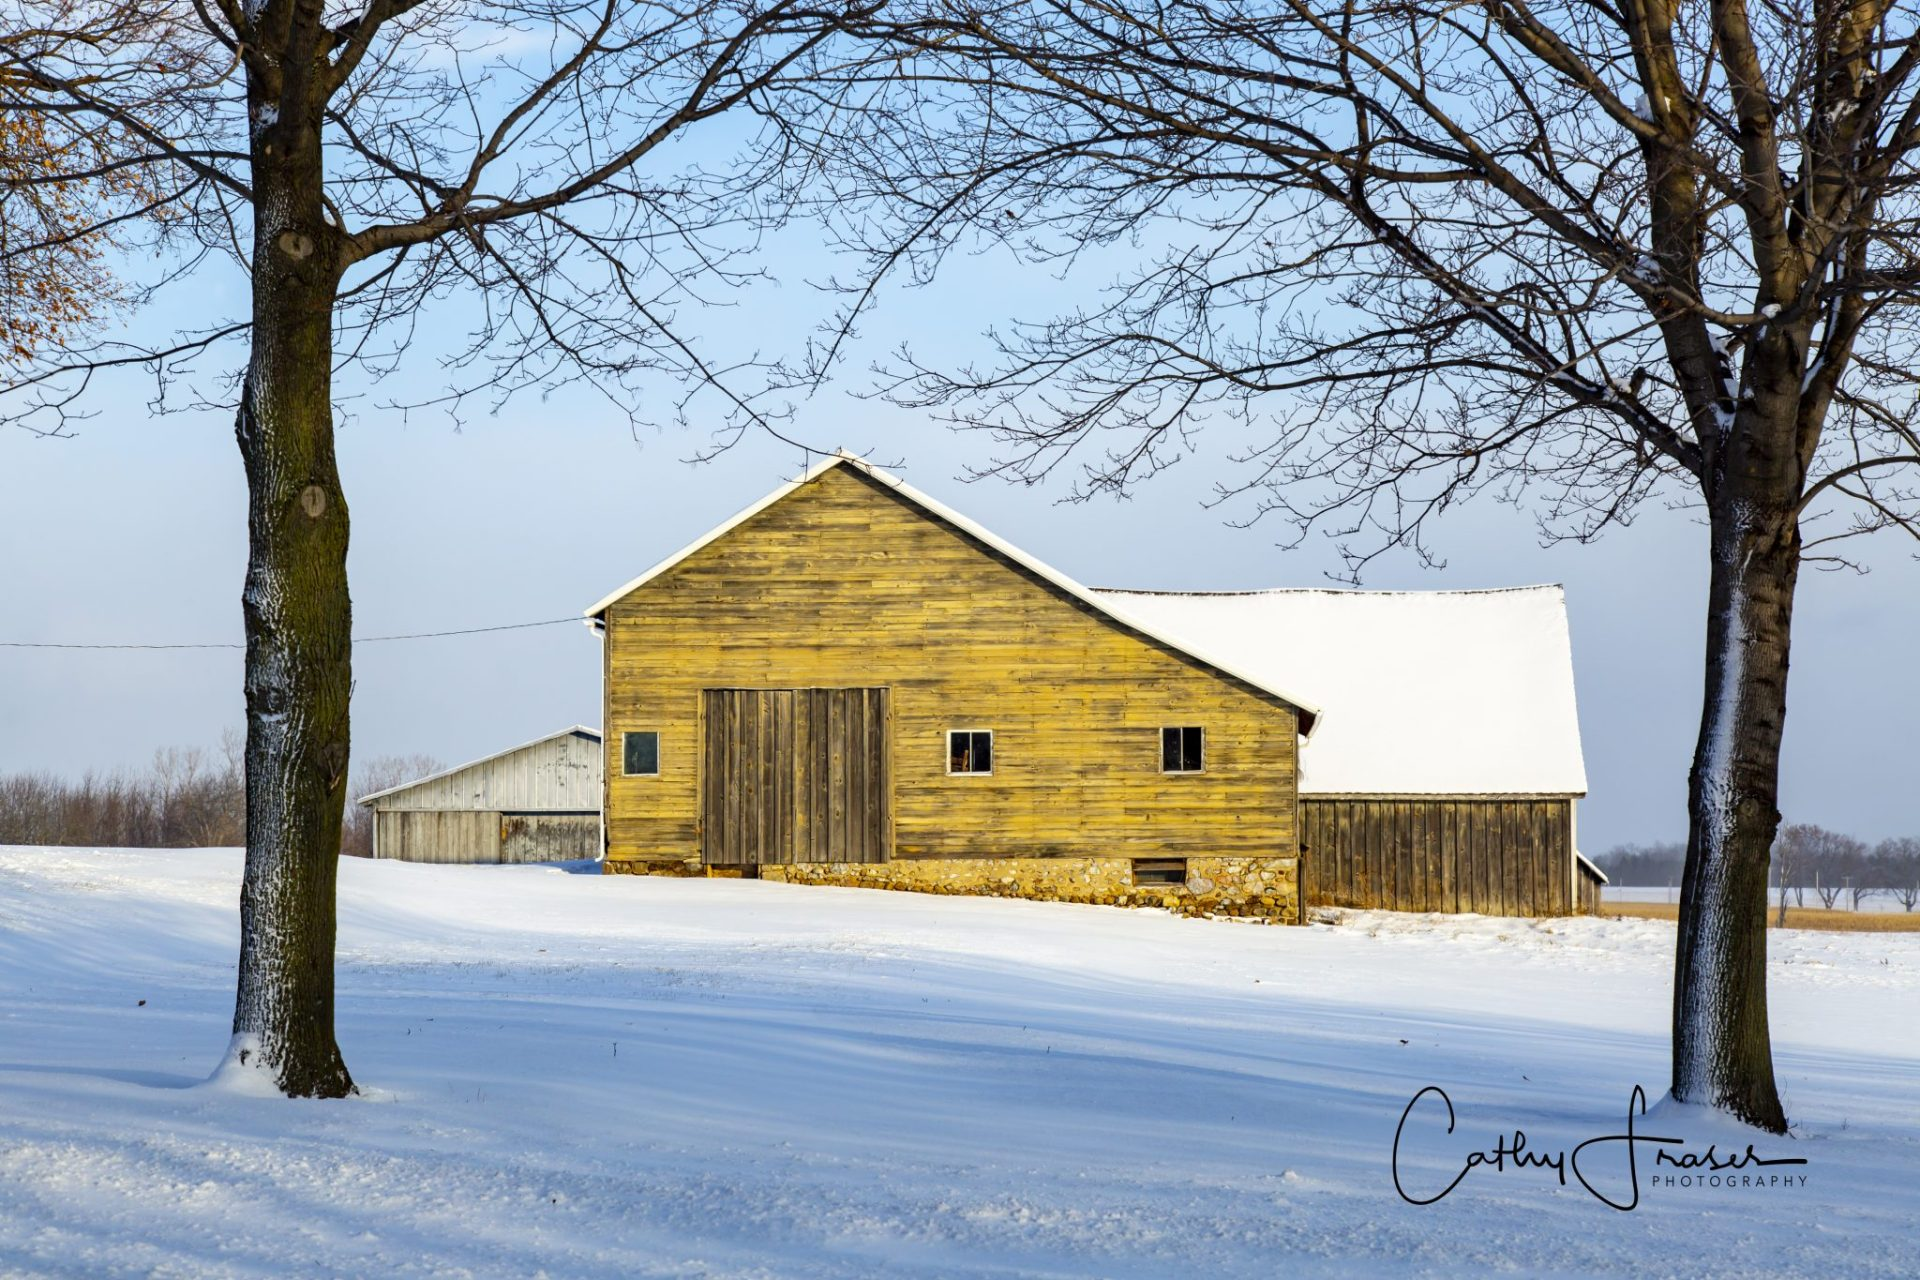 Landscape Photography of a yellow barn shown inbetween two trees in the wintertime in Upstate New York